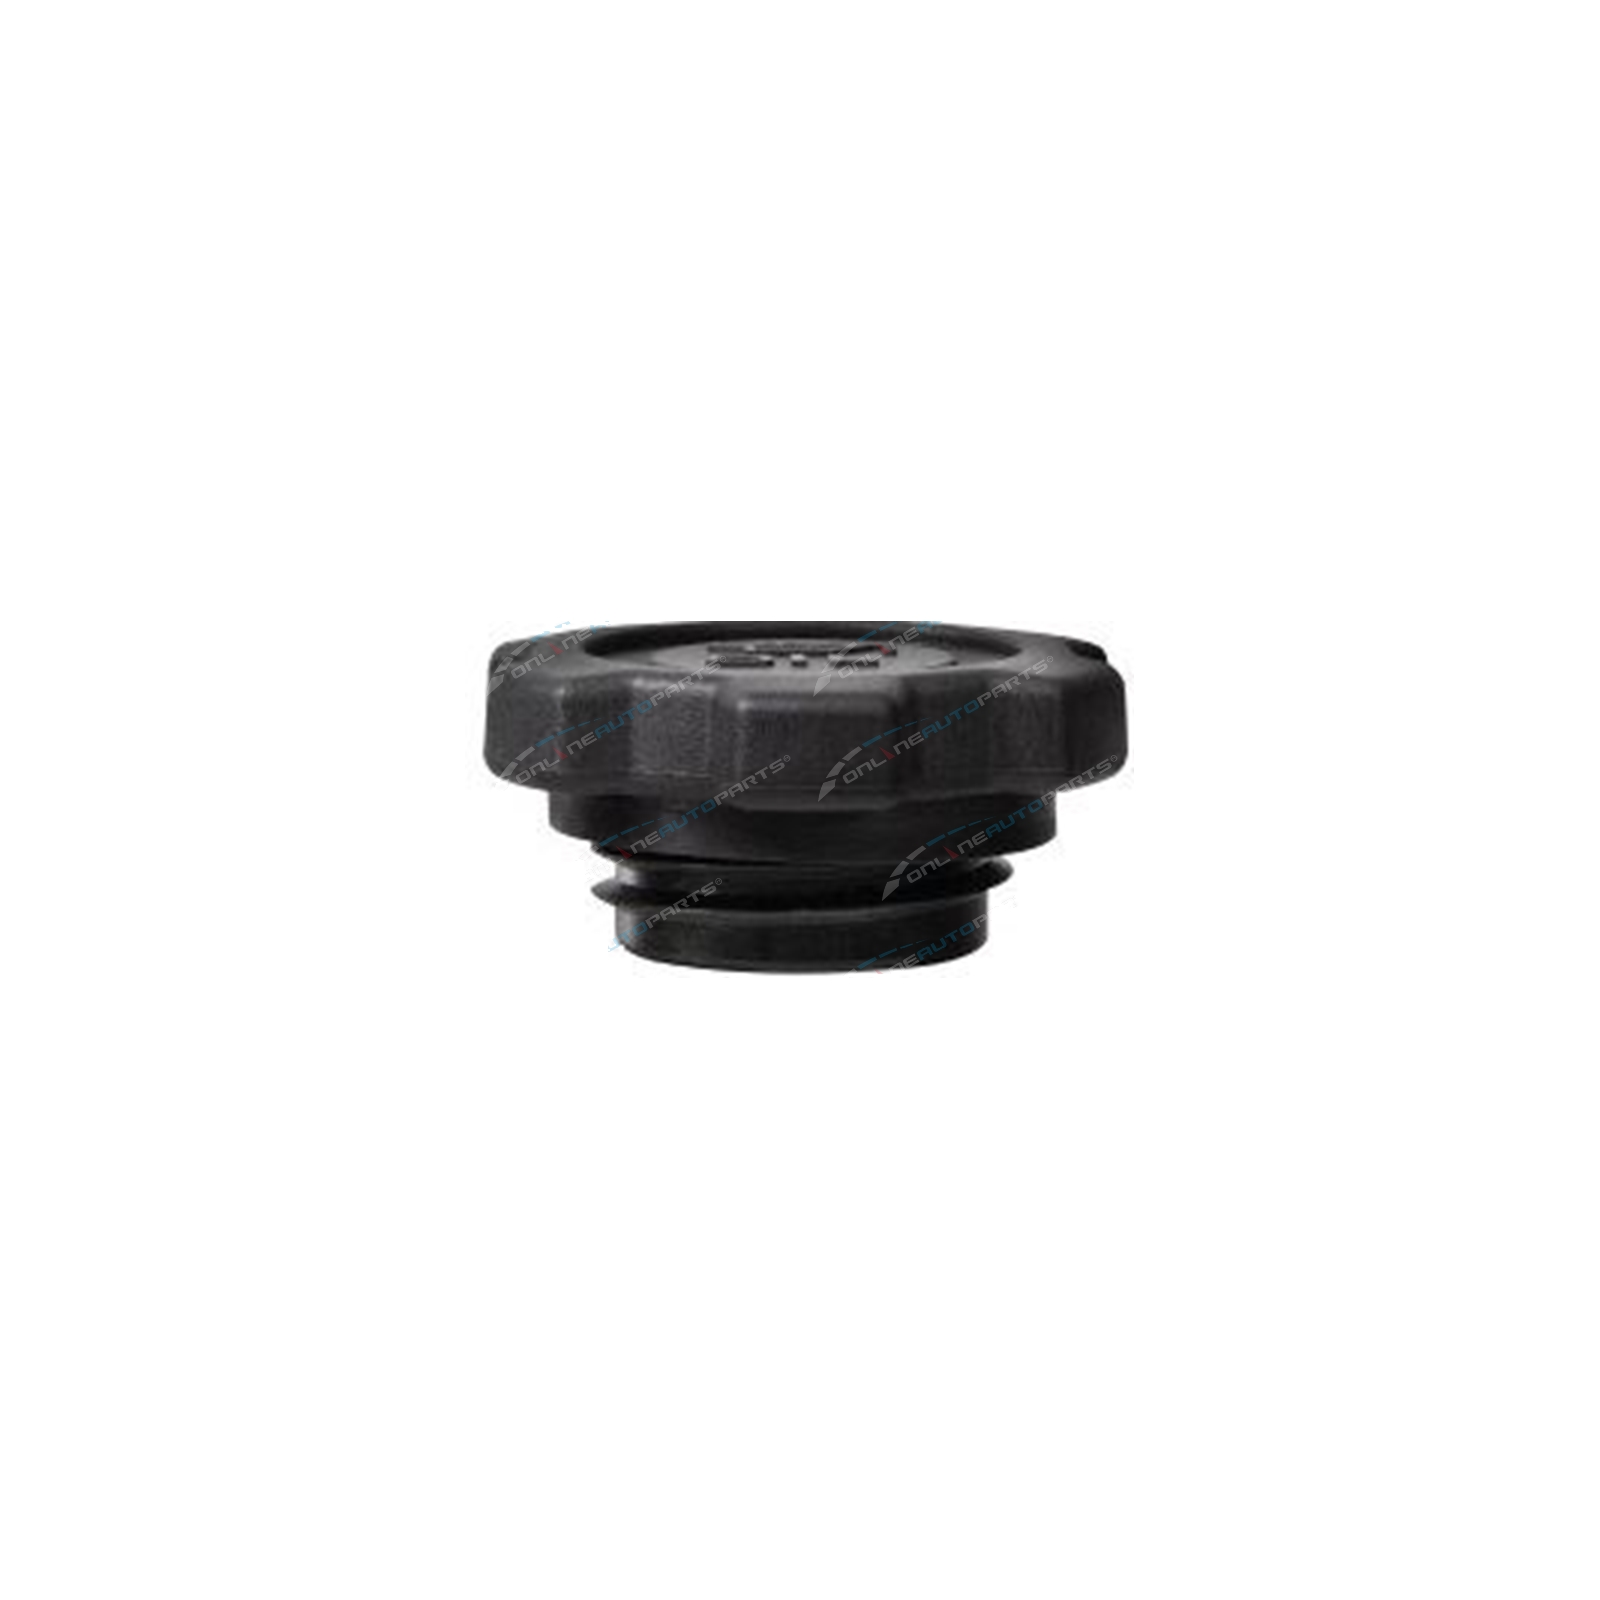 TOC526 - Engine Oil Cap Plastic screw (coarse thread) - Tridon